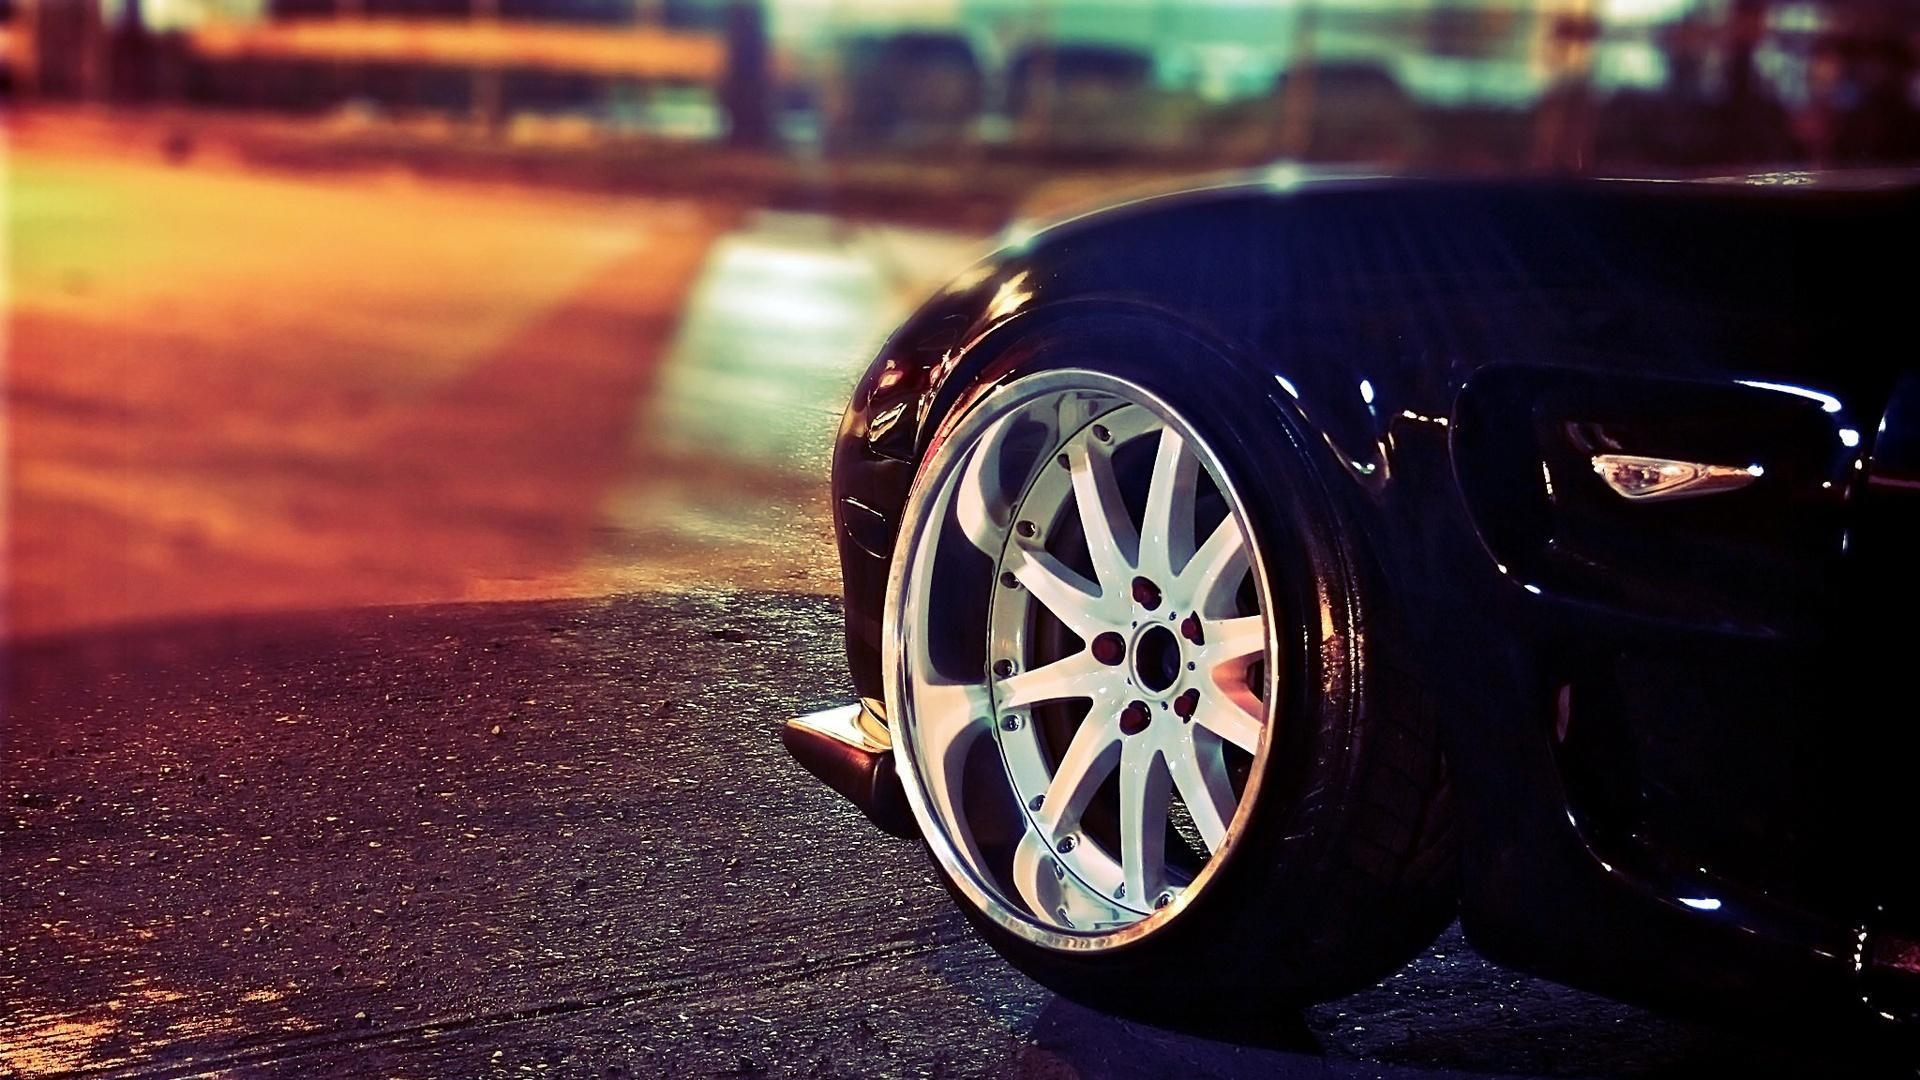 Car Wheels HD desktop wallpapers : Widescreen : High Definition